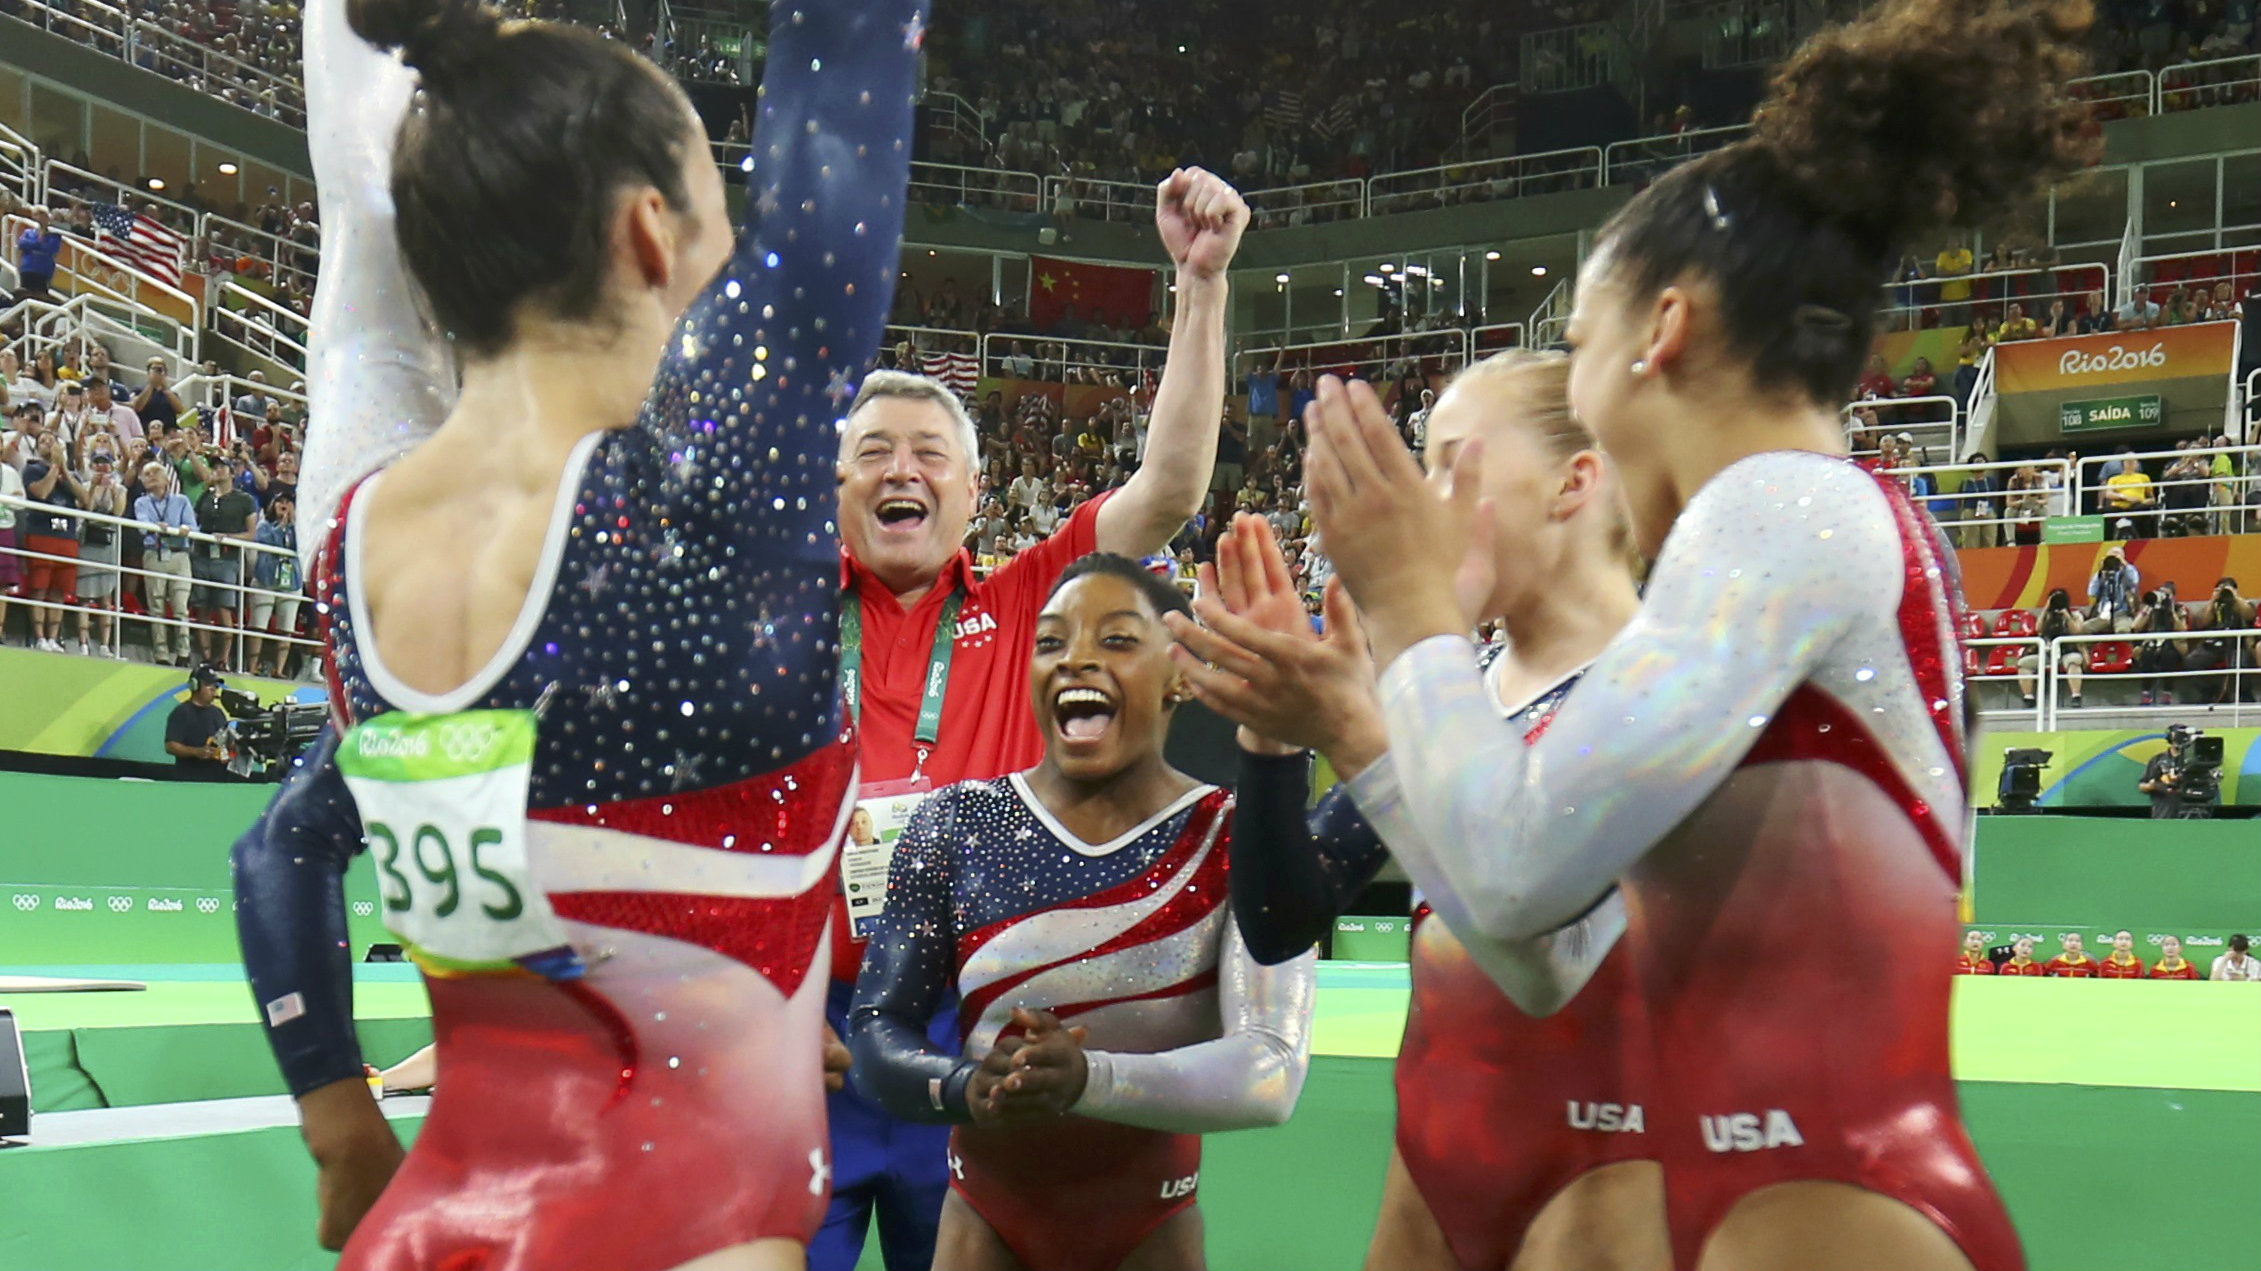 Simone Biles and the Team USA artistic gymnastics team celebrate at the 2016 Olympic Games in Rio.